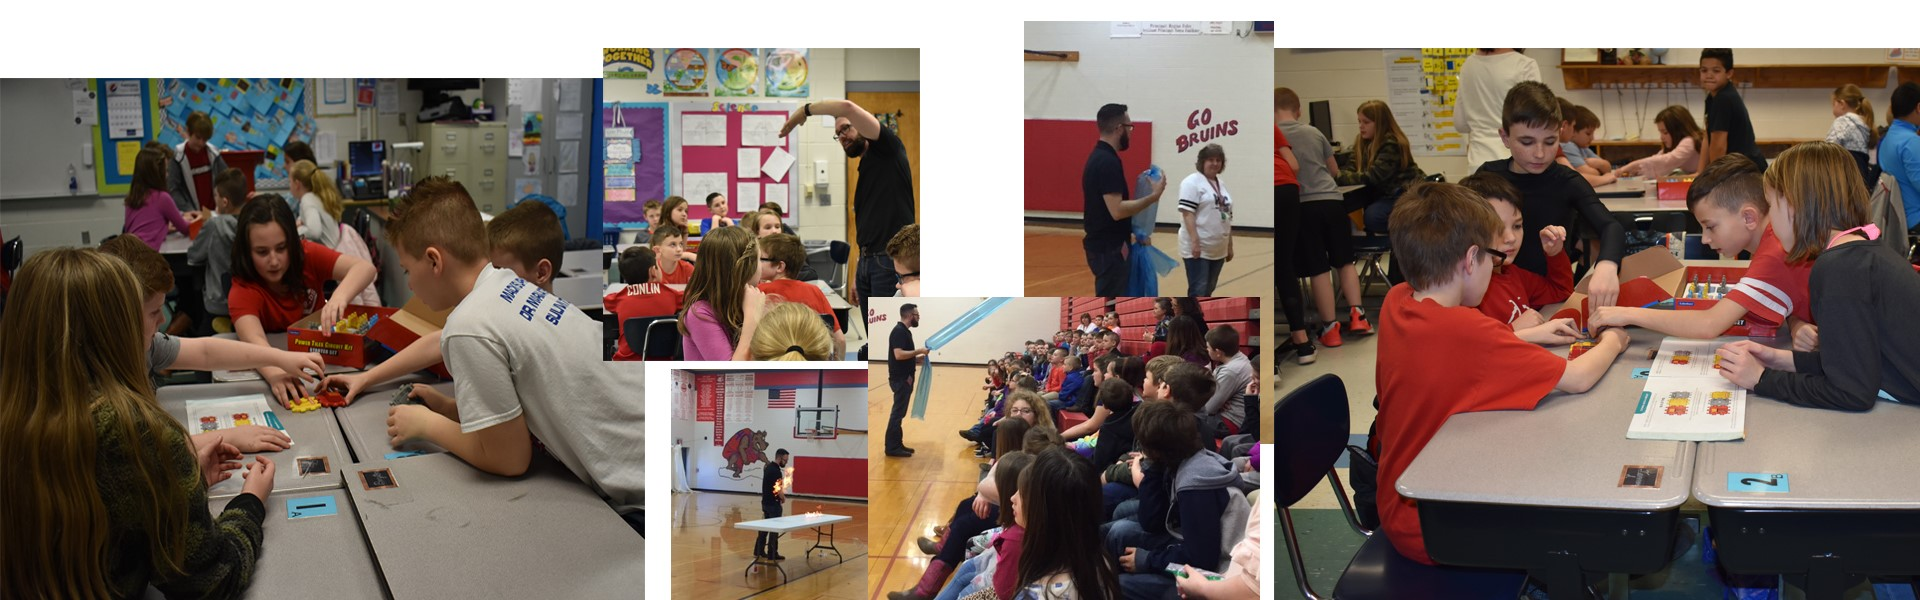 Mr. Science visits Oak Grove